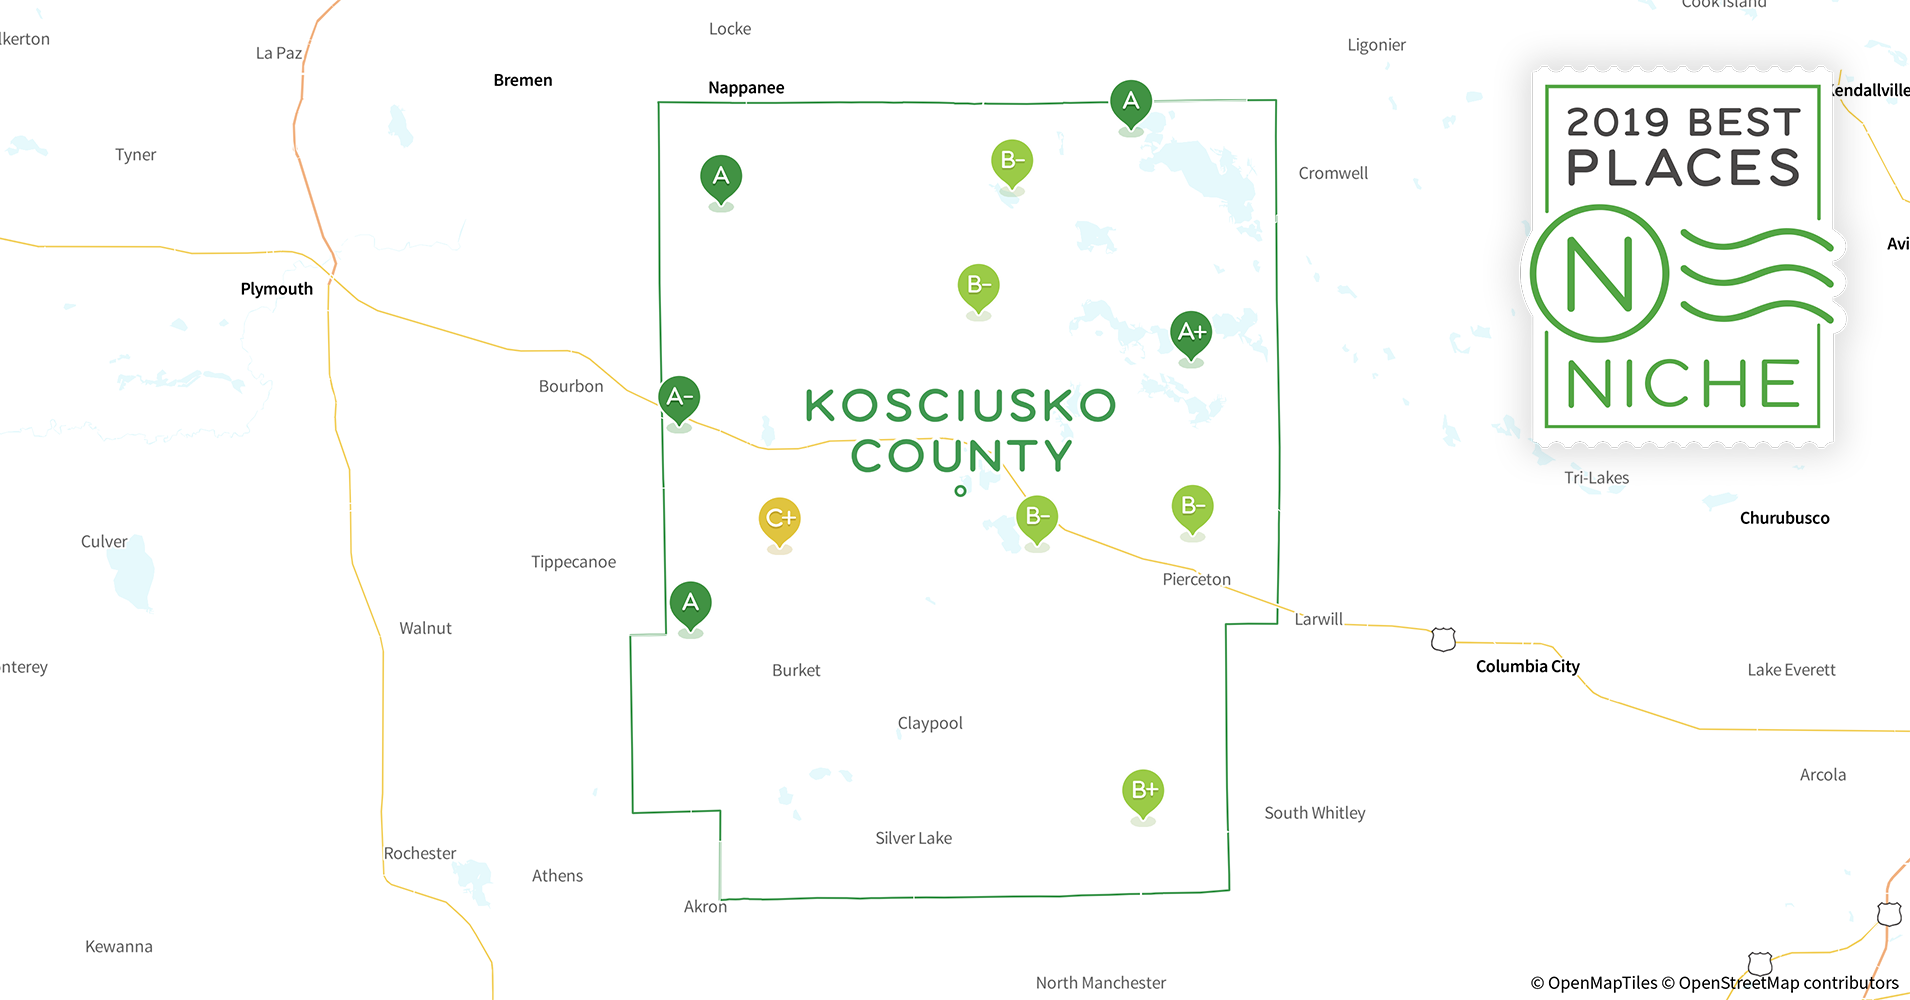 2019 Best Places to Live in Kosciusko County, IN - Niche Kosciusko Tx Map on nome tx map, beaufort tx map, natchitoches tx map, laurel tx map, olive branch tx map, oklahoma city tx map, evansville tx map, leland tx map, louisiana tx map, boston tx map, campbellsville tx map, springfield tx map, mcalester tx map, crystal springs tx map, frankfort tx map, biloxi tx map, gulfport tx map, long beach tx map, hattiesburg tx map, clay tx map,